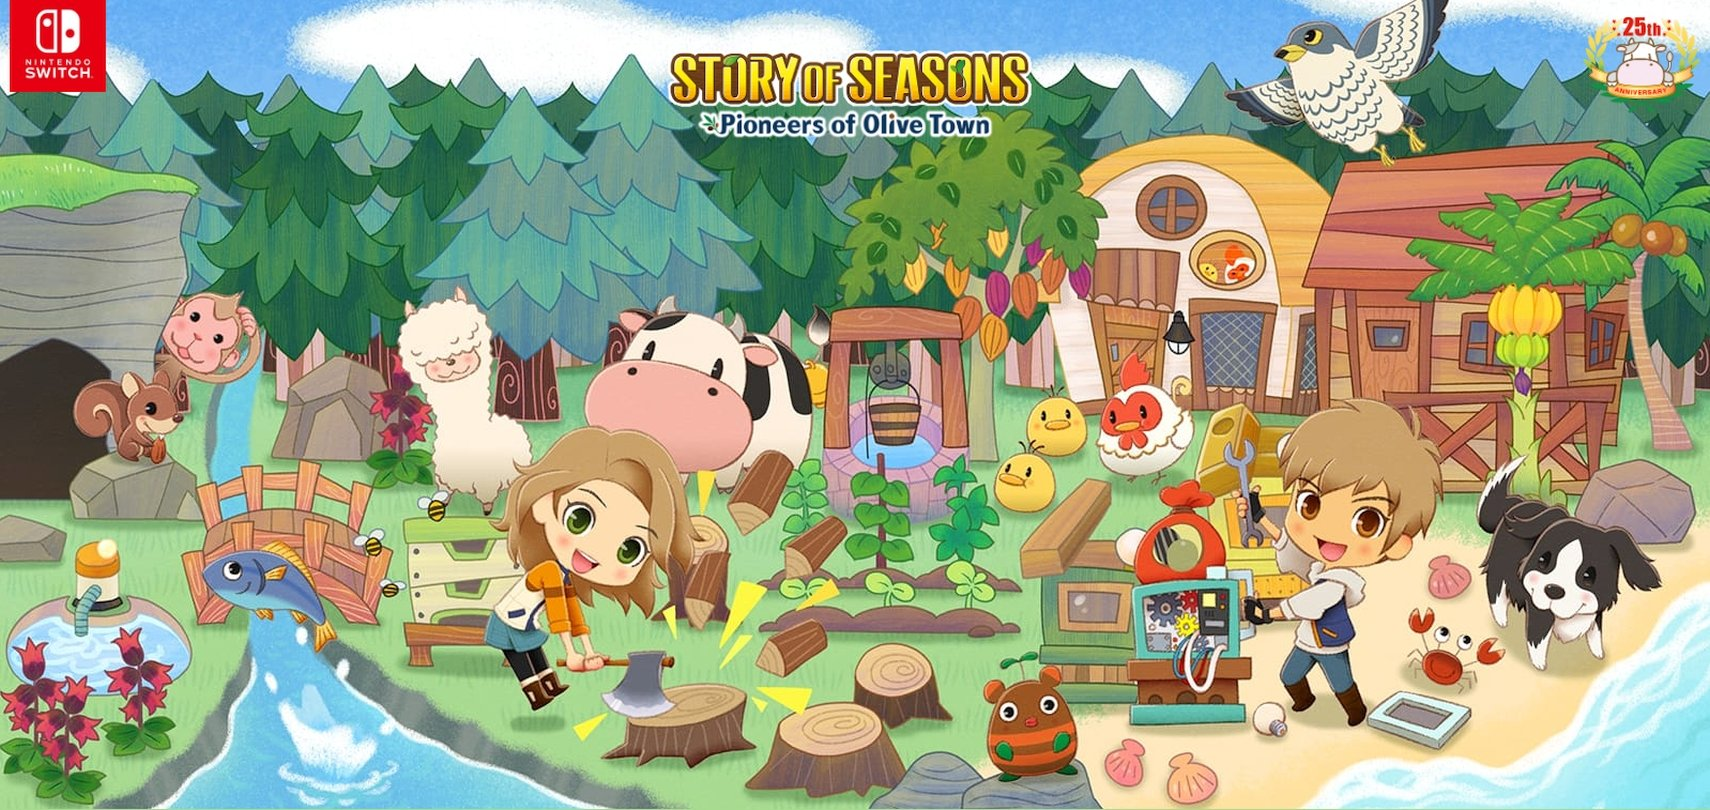 Learn More About Story of Seasons: Pioneers of Olive Town In New Overview Trailer